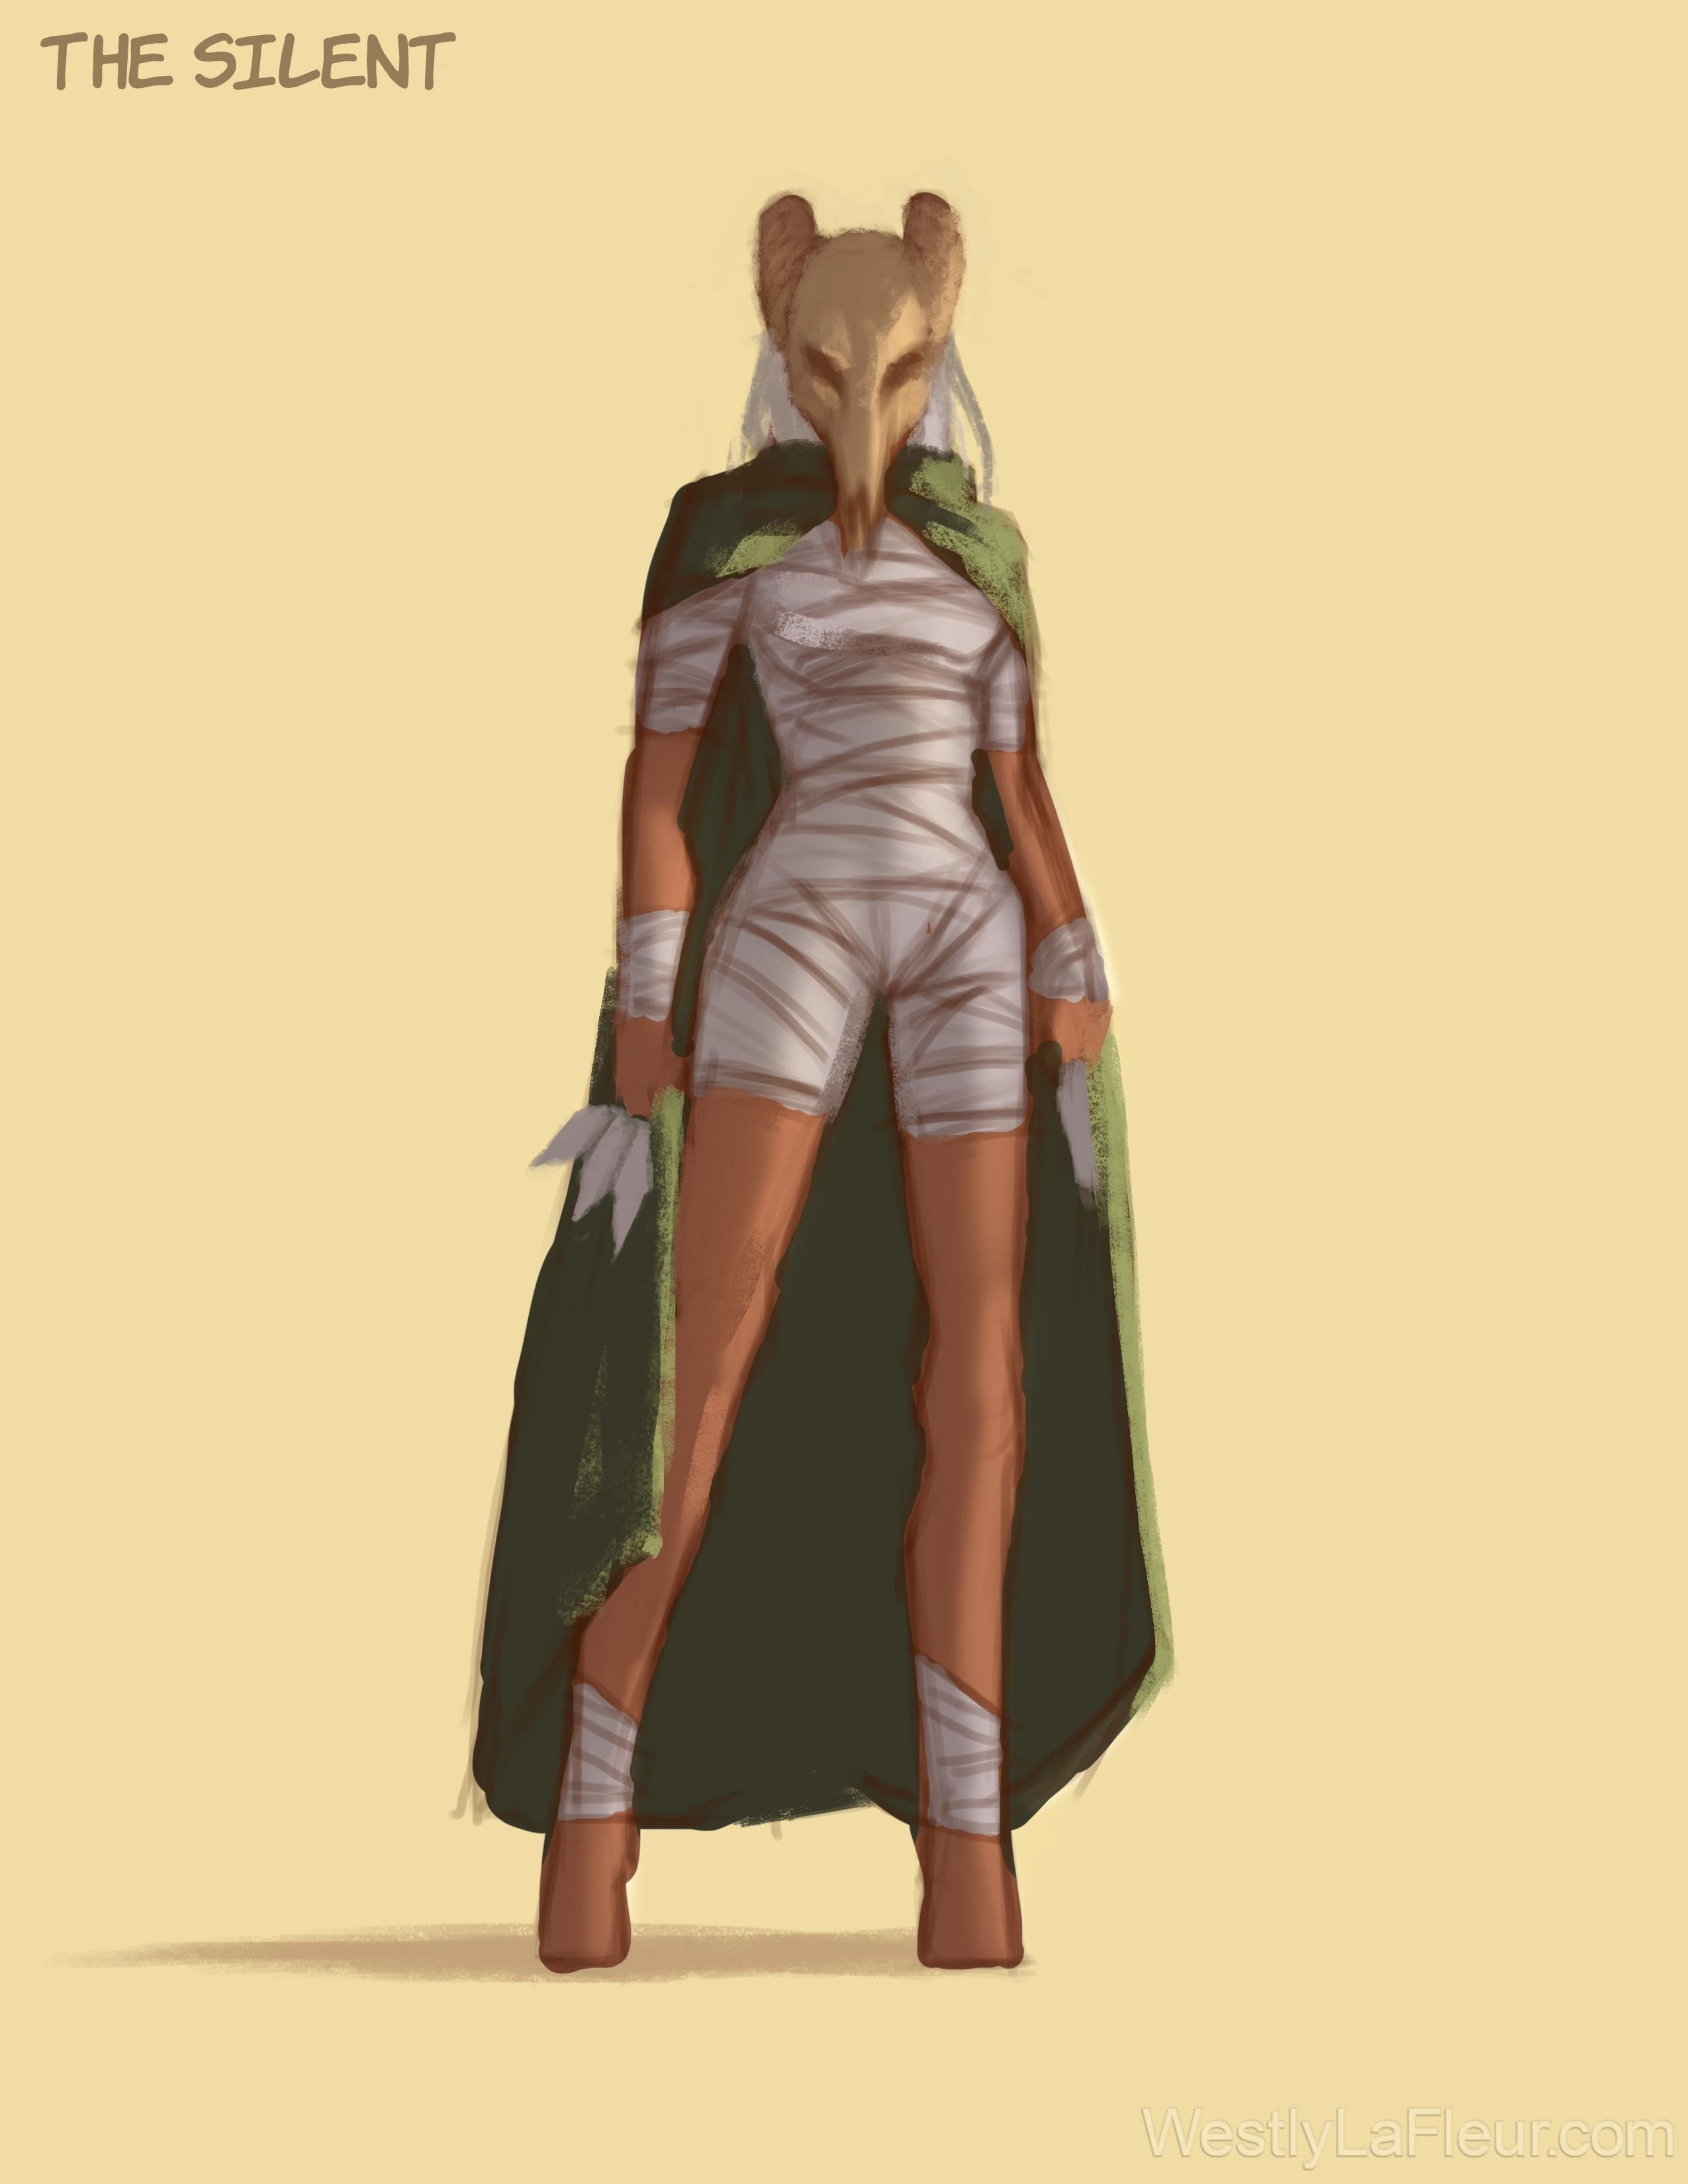 Image Result For Slay The Spire Silent Character Concept Art Concept Art Characters Character Concept Concept Art